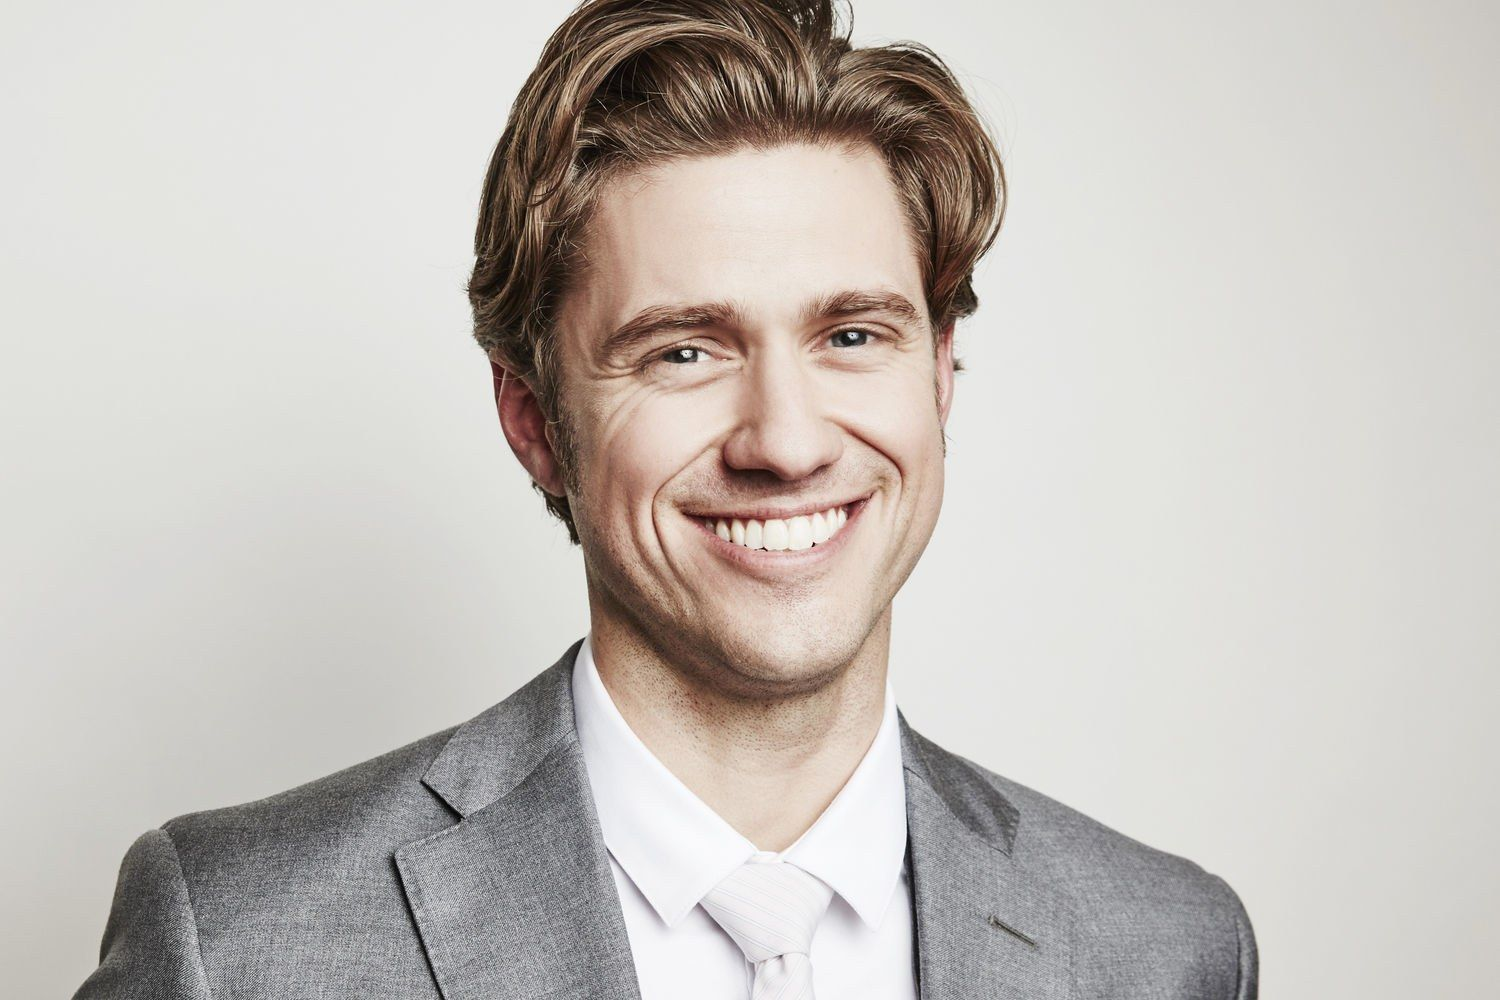 Big forehead haircut men image result for aaron tveit  future character inspiration  males